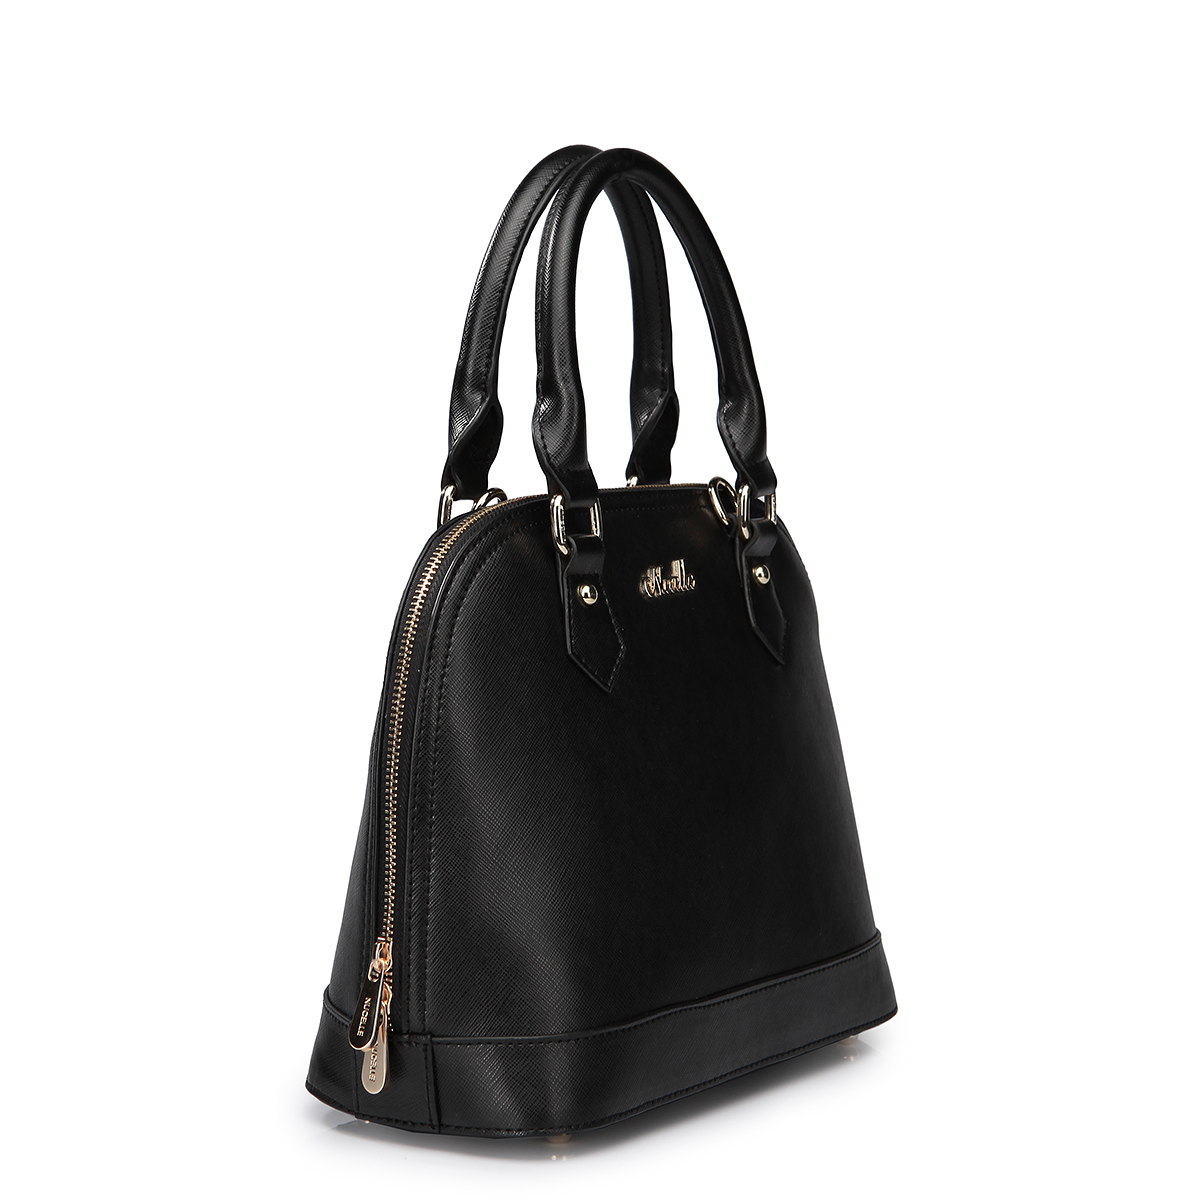 Lady Leather Bags Black